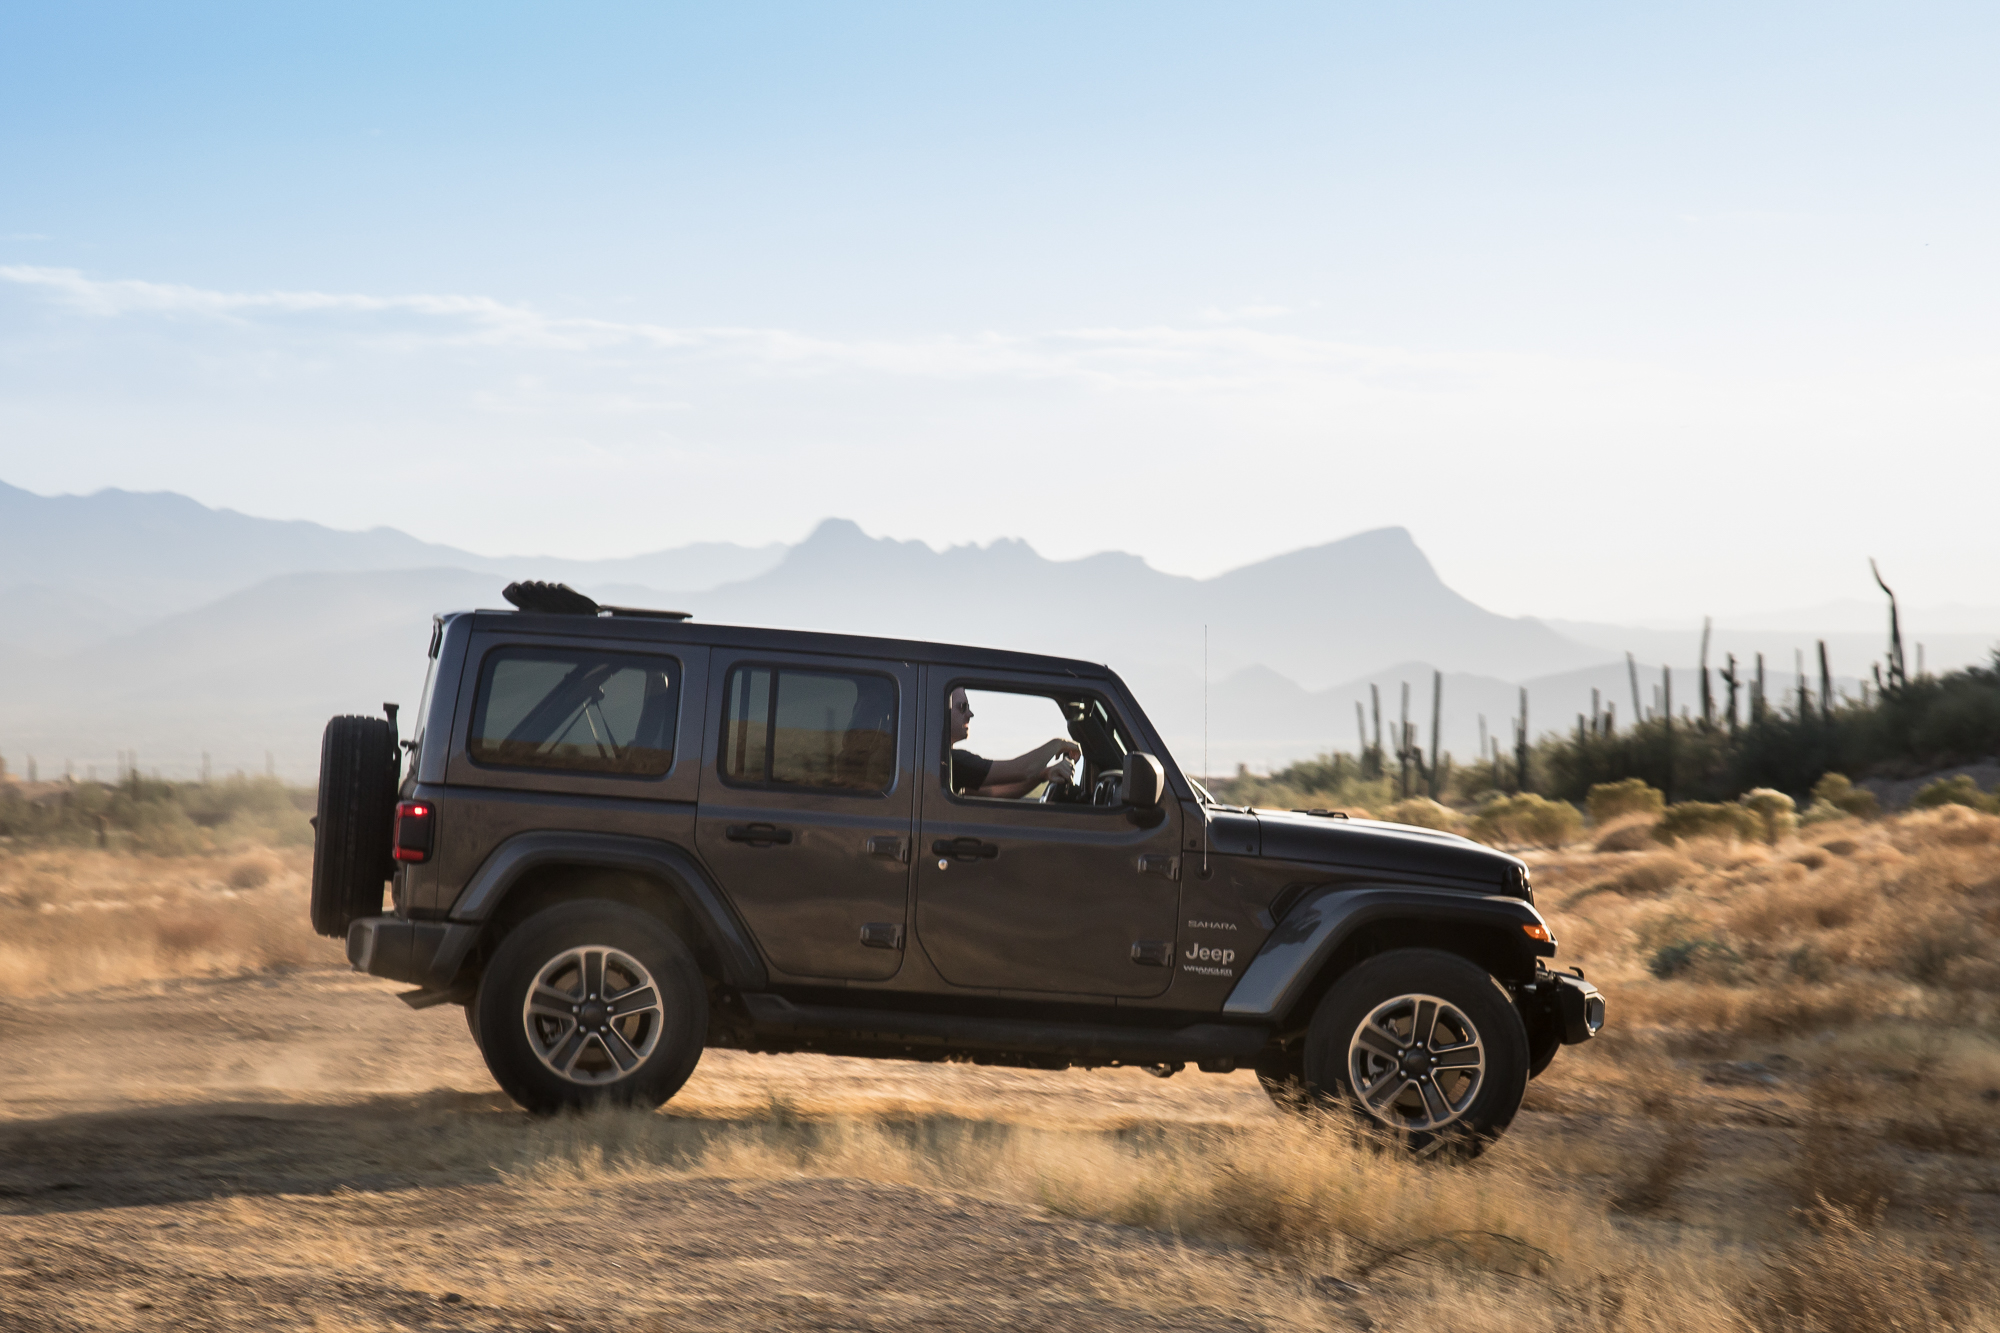 03-jeep-wrangler-2018-dynamic-exterior-grey-profile.jpg